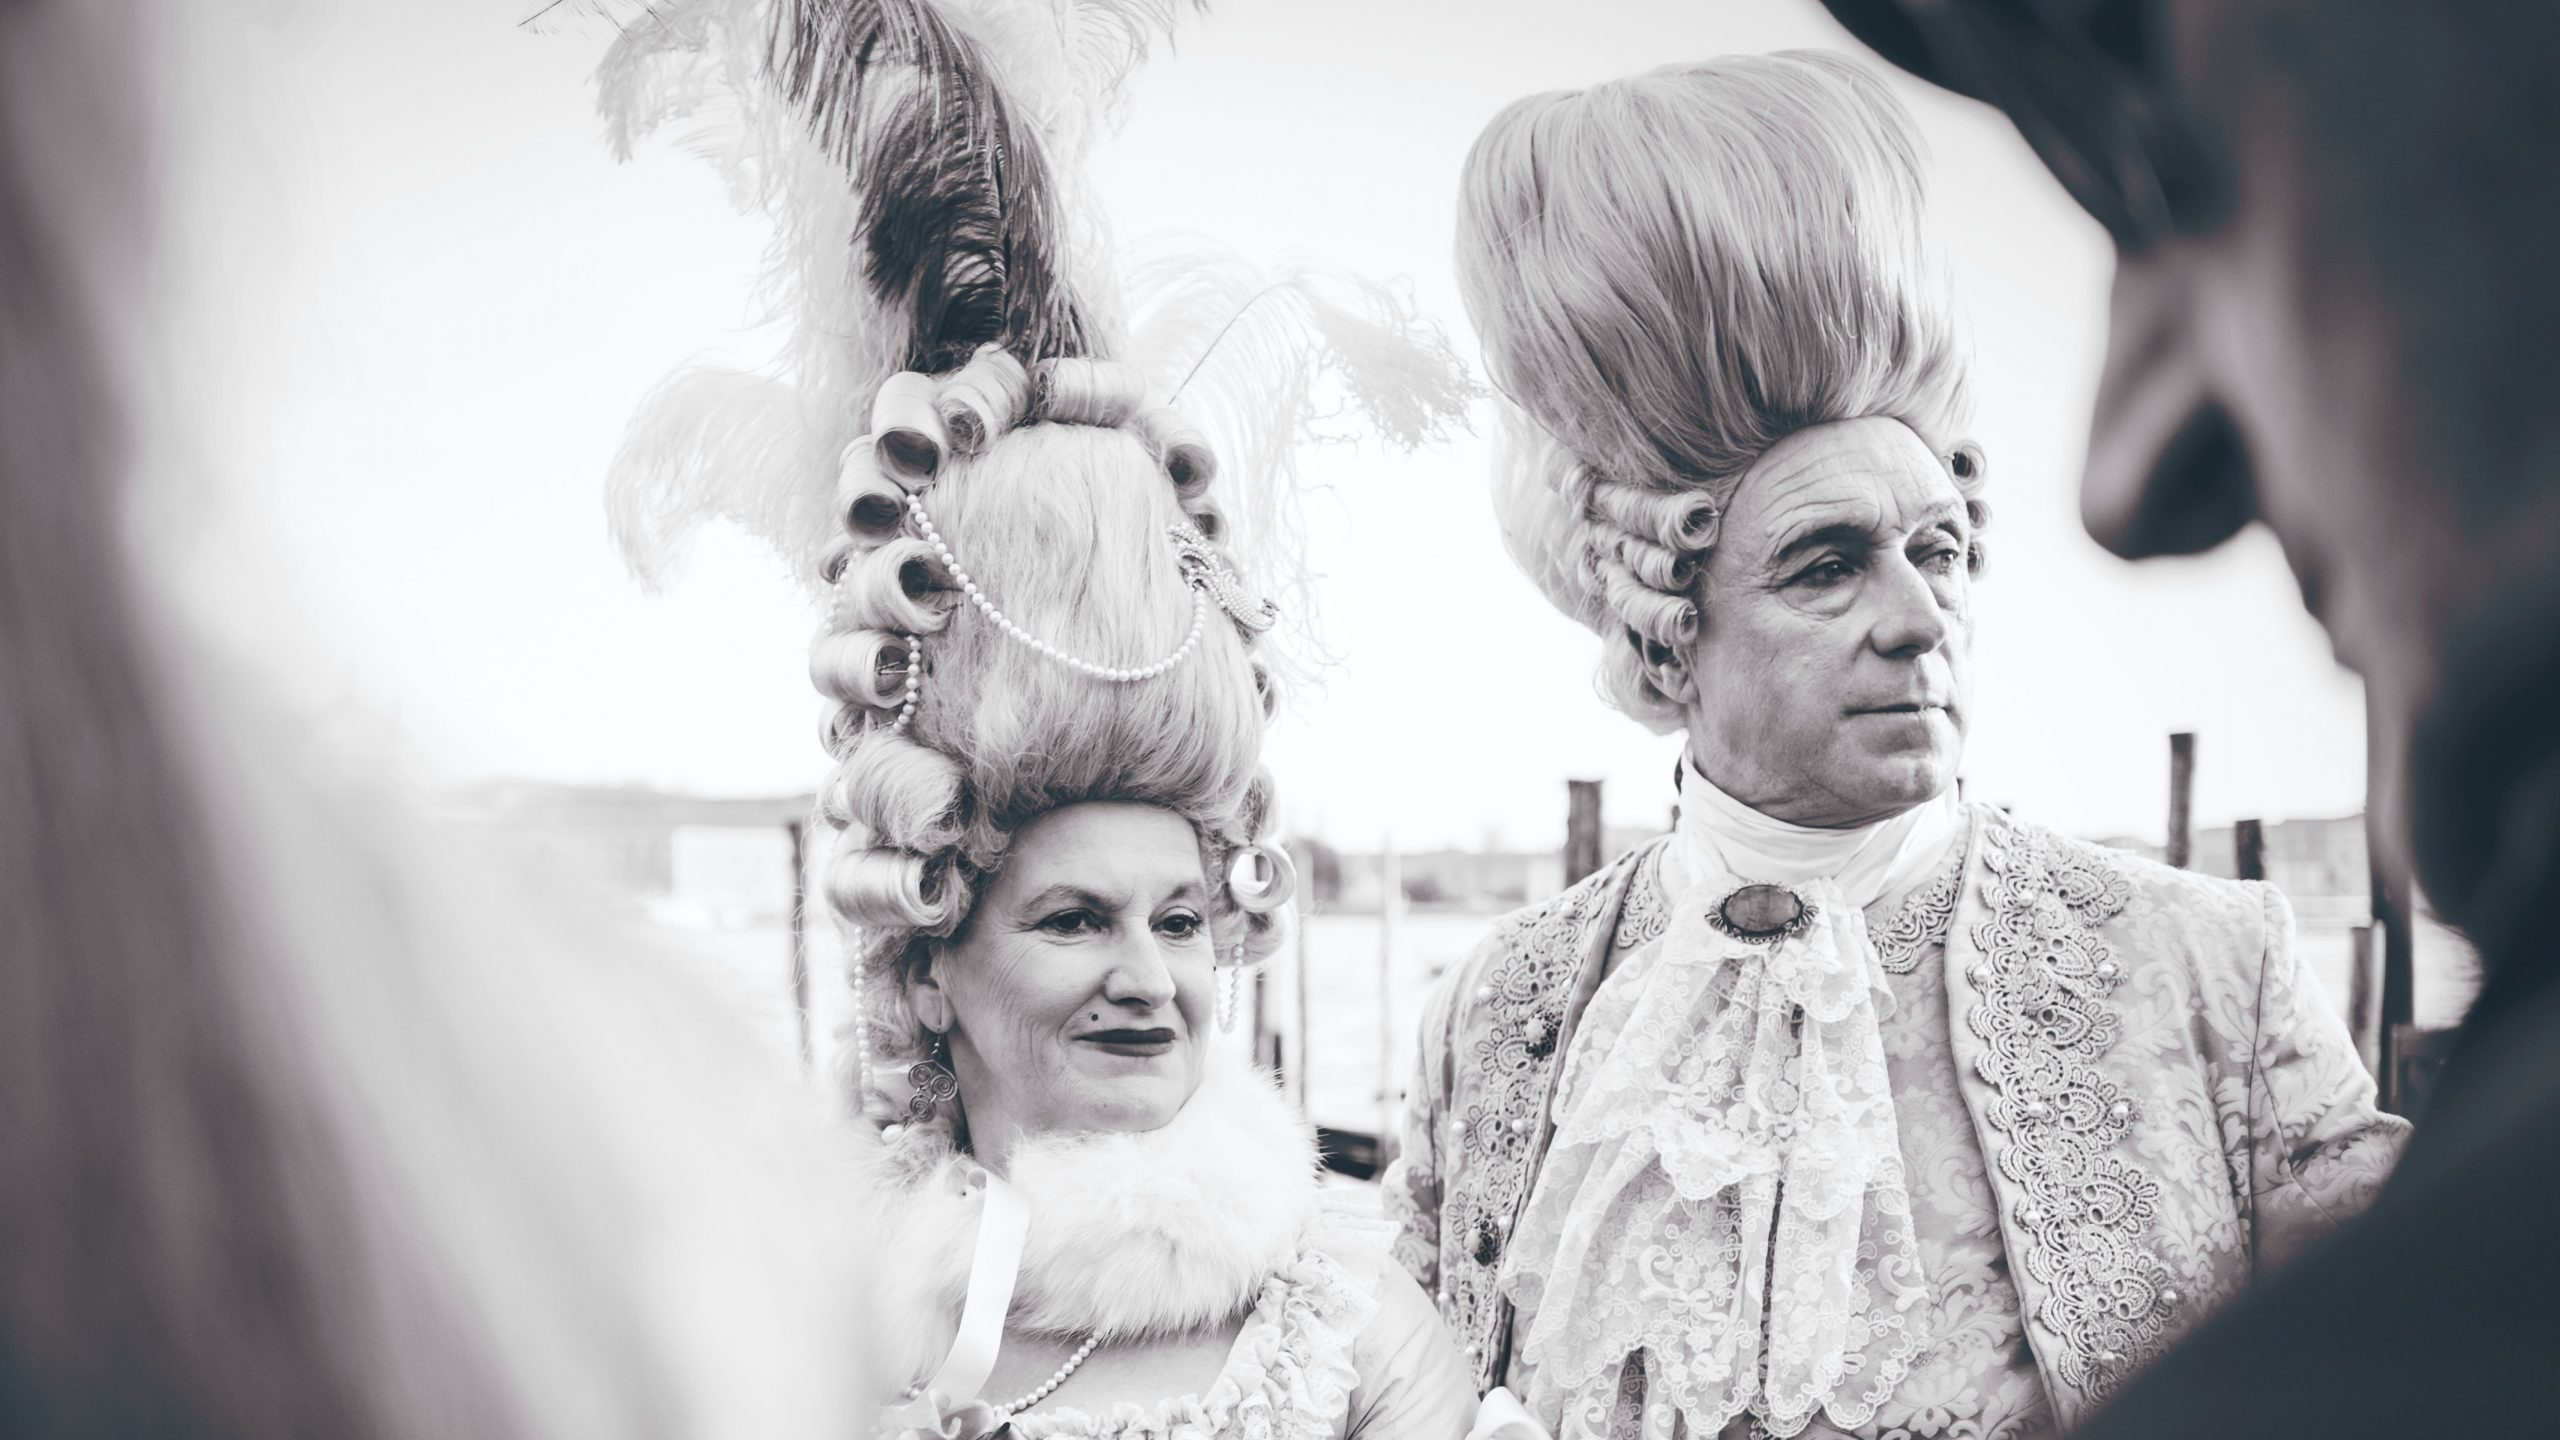 Why did People Wear Powdered Wigs